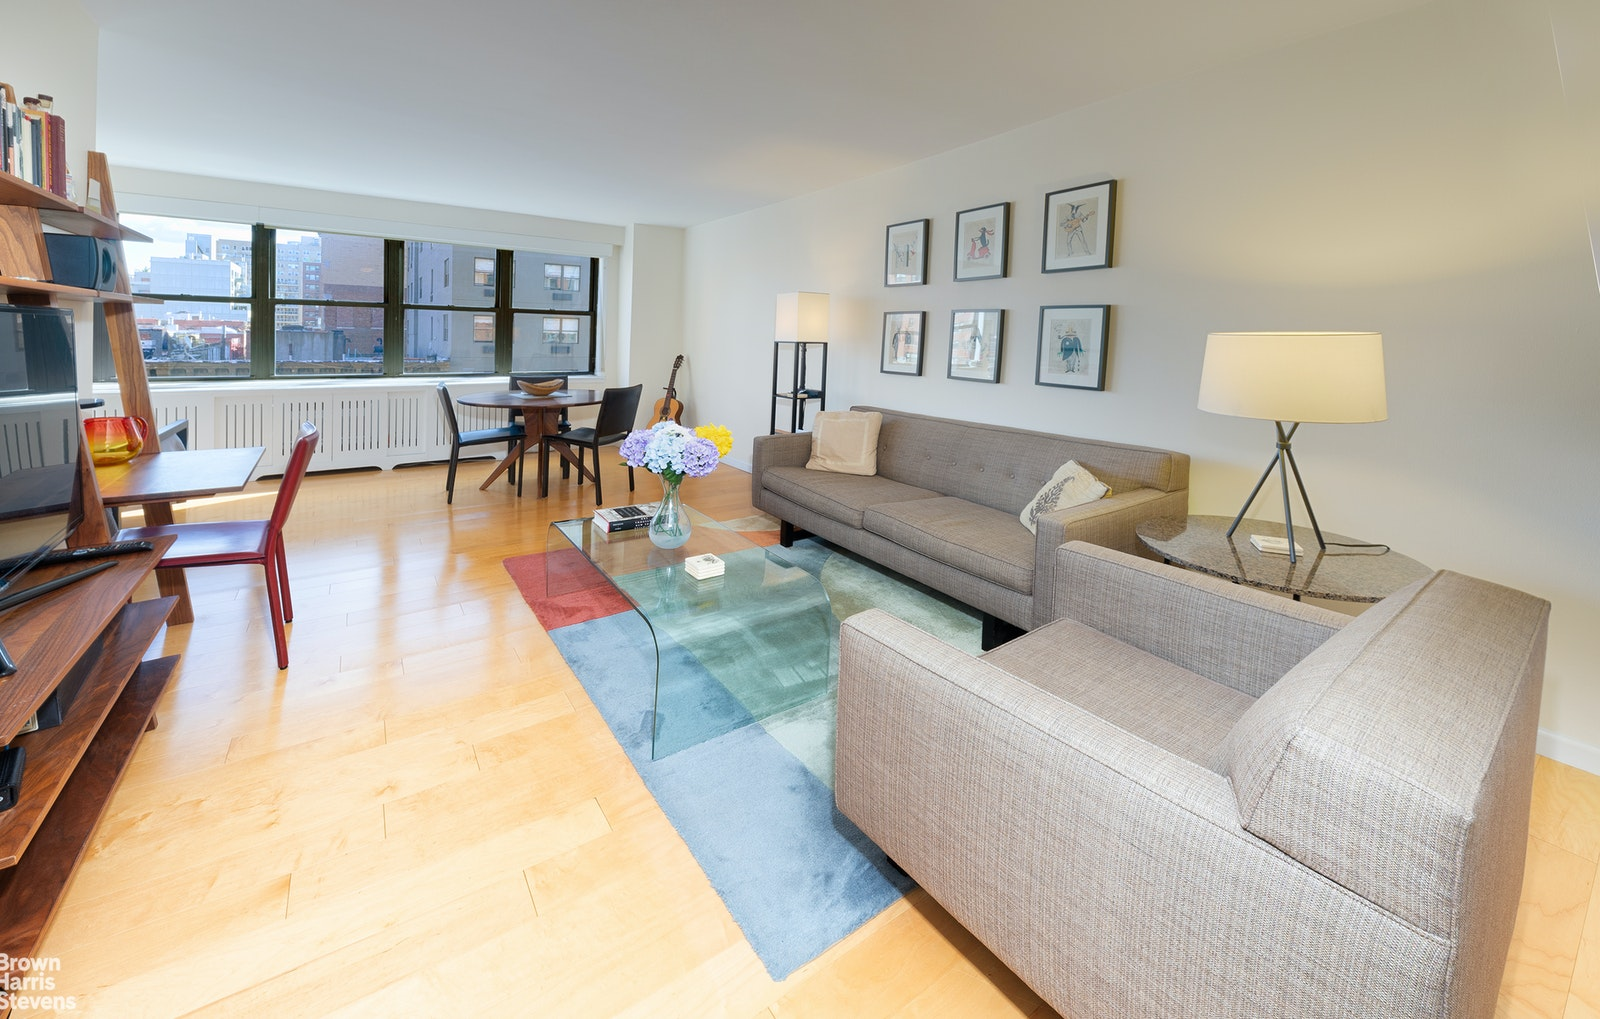 330 Third Avenue 9e, Gramercy Park, NYC, 10010, $540,000, Property For Sale, Halstead Real Estate, Photo 1